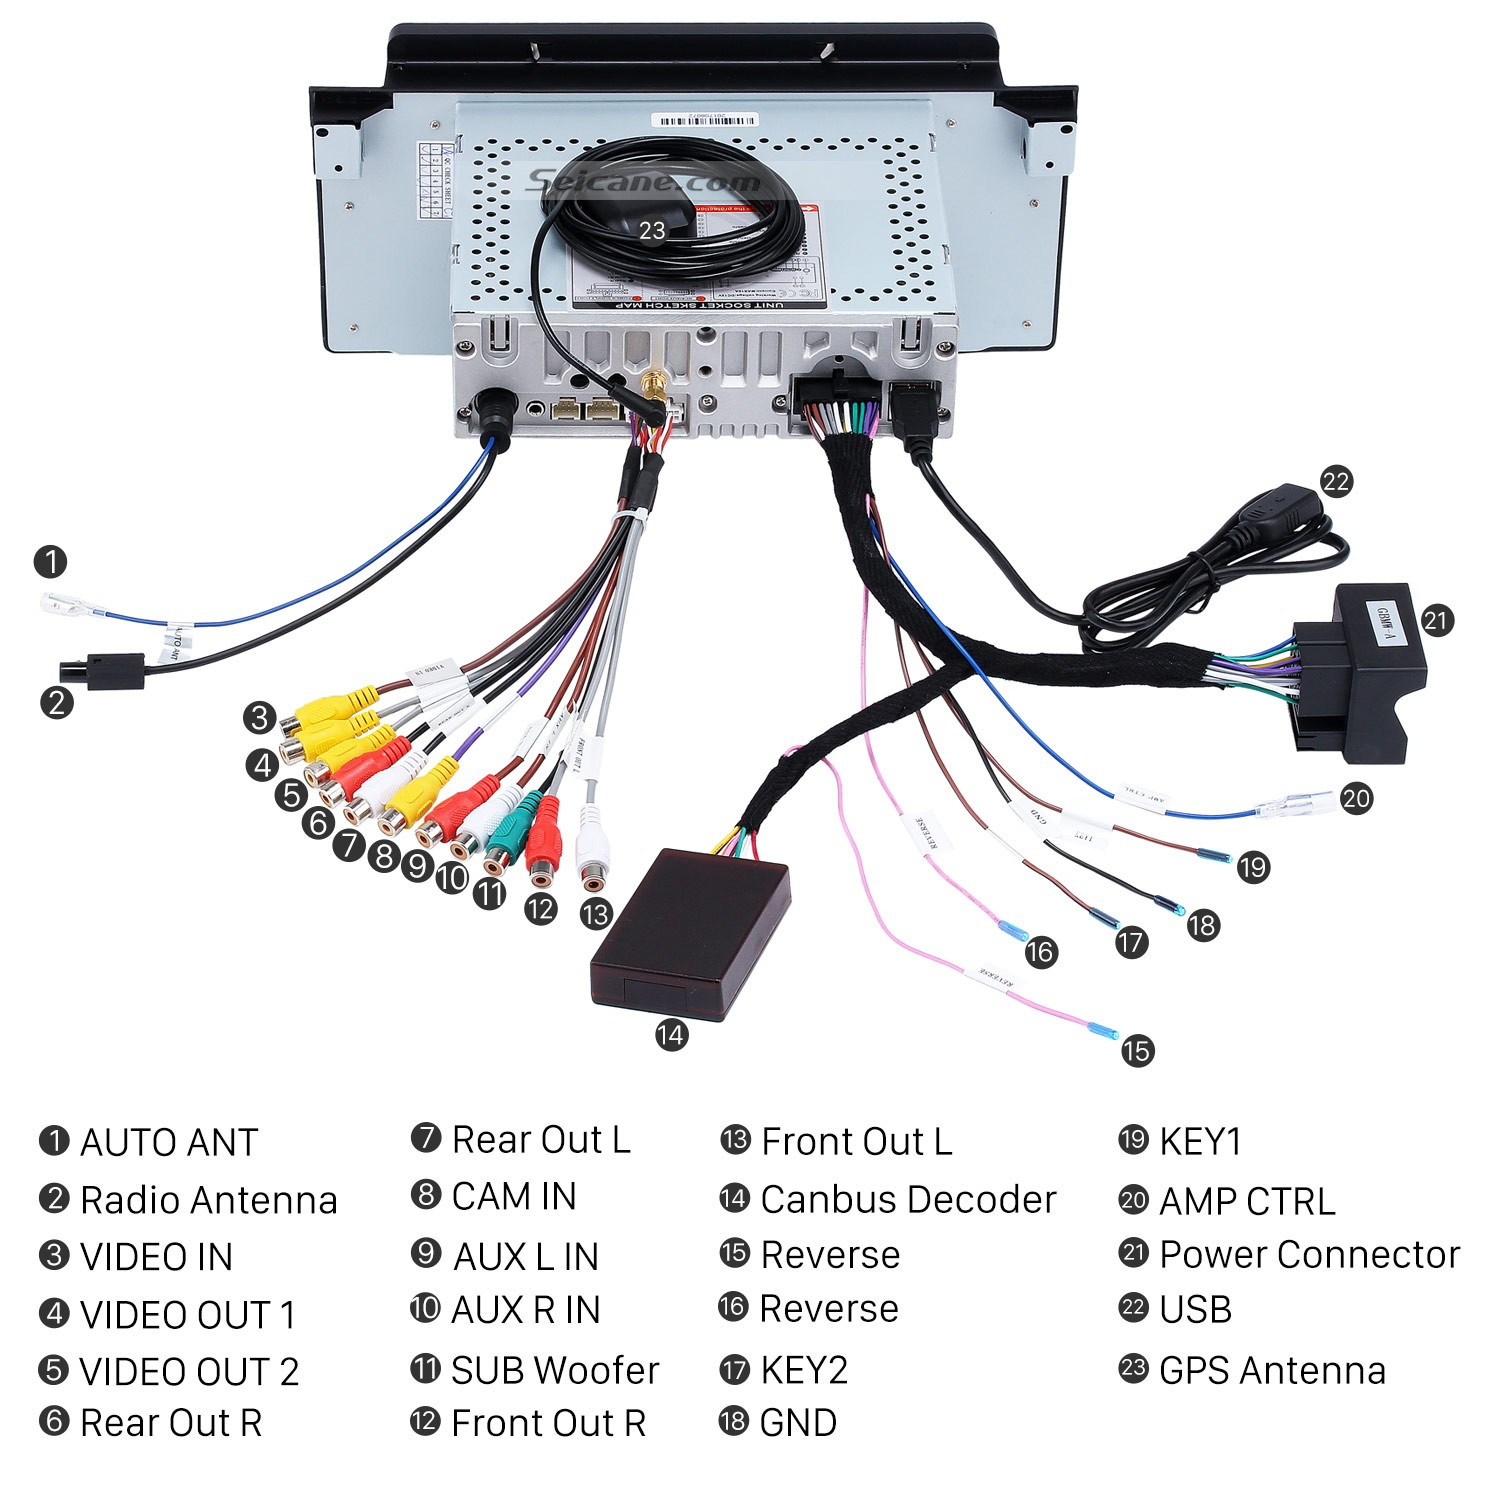 Land Rover Navigation Wiring Diagram : How to upgrade a range rover car stereo